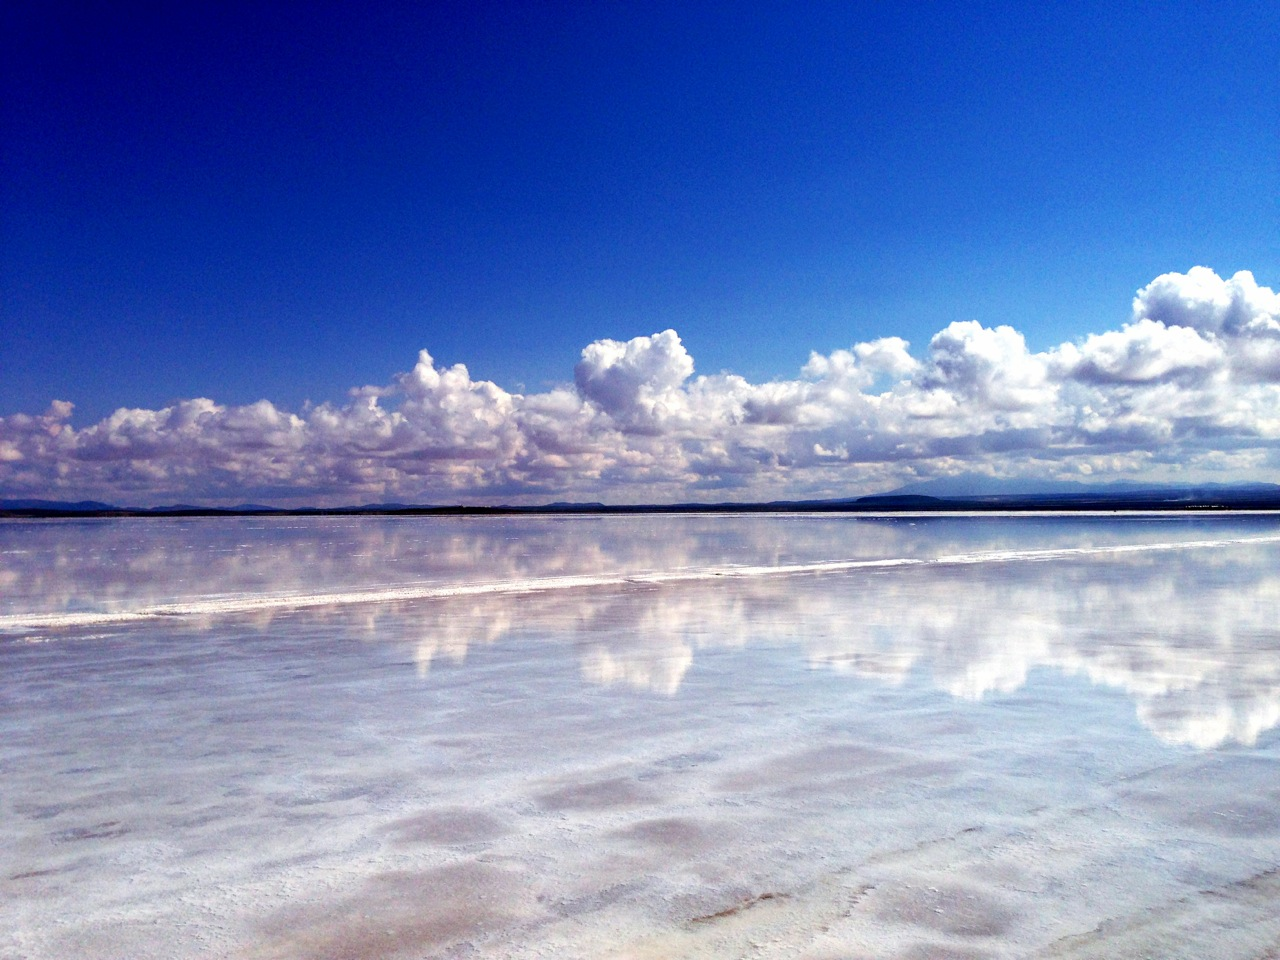 Four Days in Bolivia: Our trip to the Salar